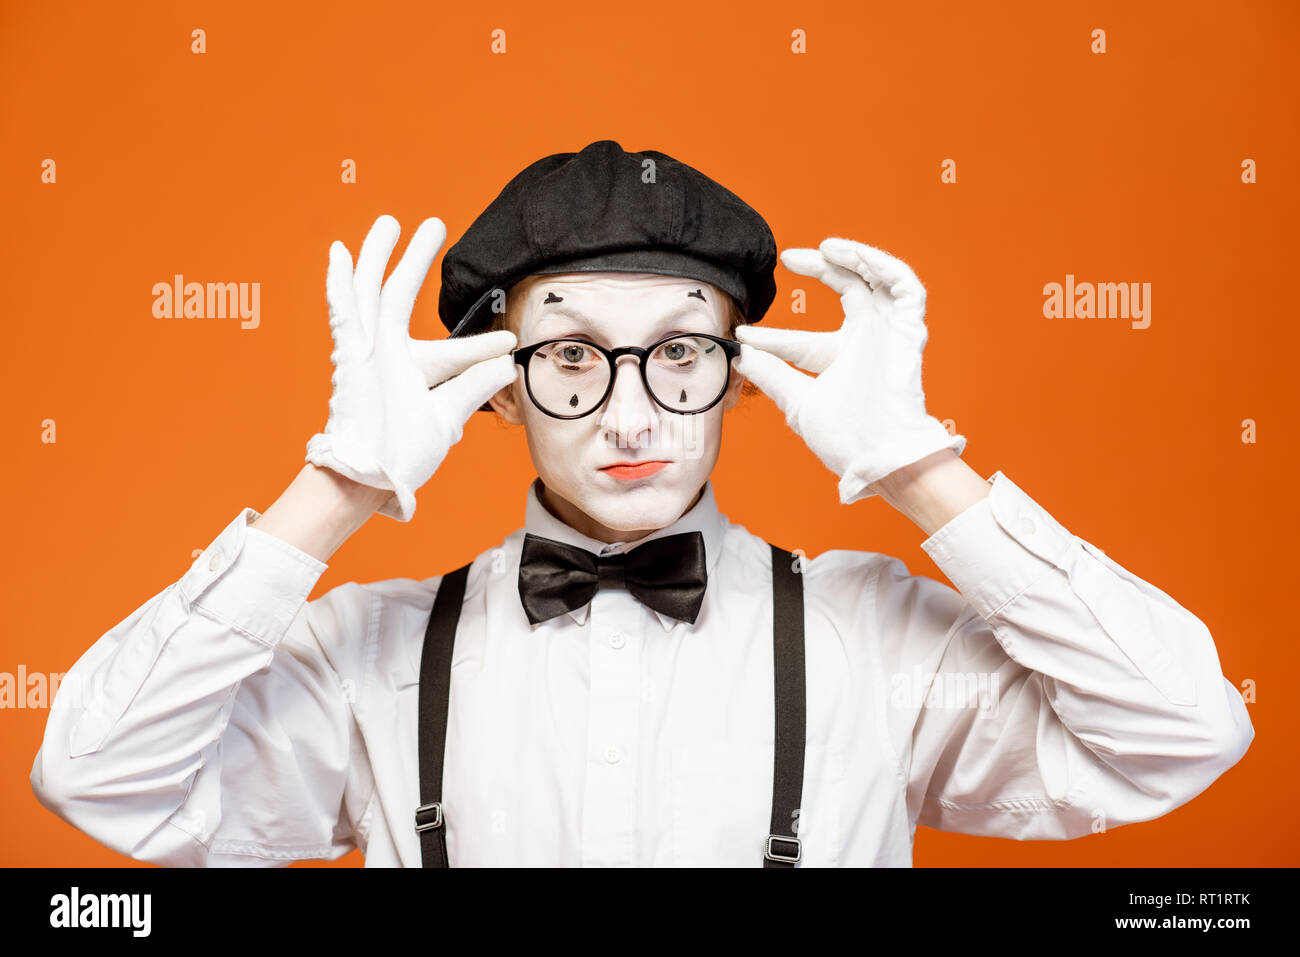 Portrait of a pantomime with white facial makeup in eyeglasses showing expressive emotions on the orange background - Stock Image